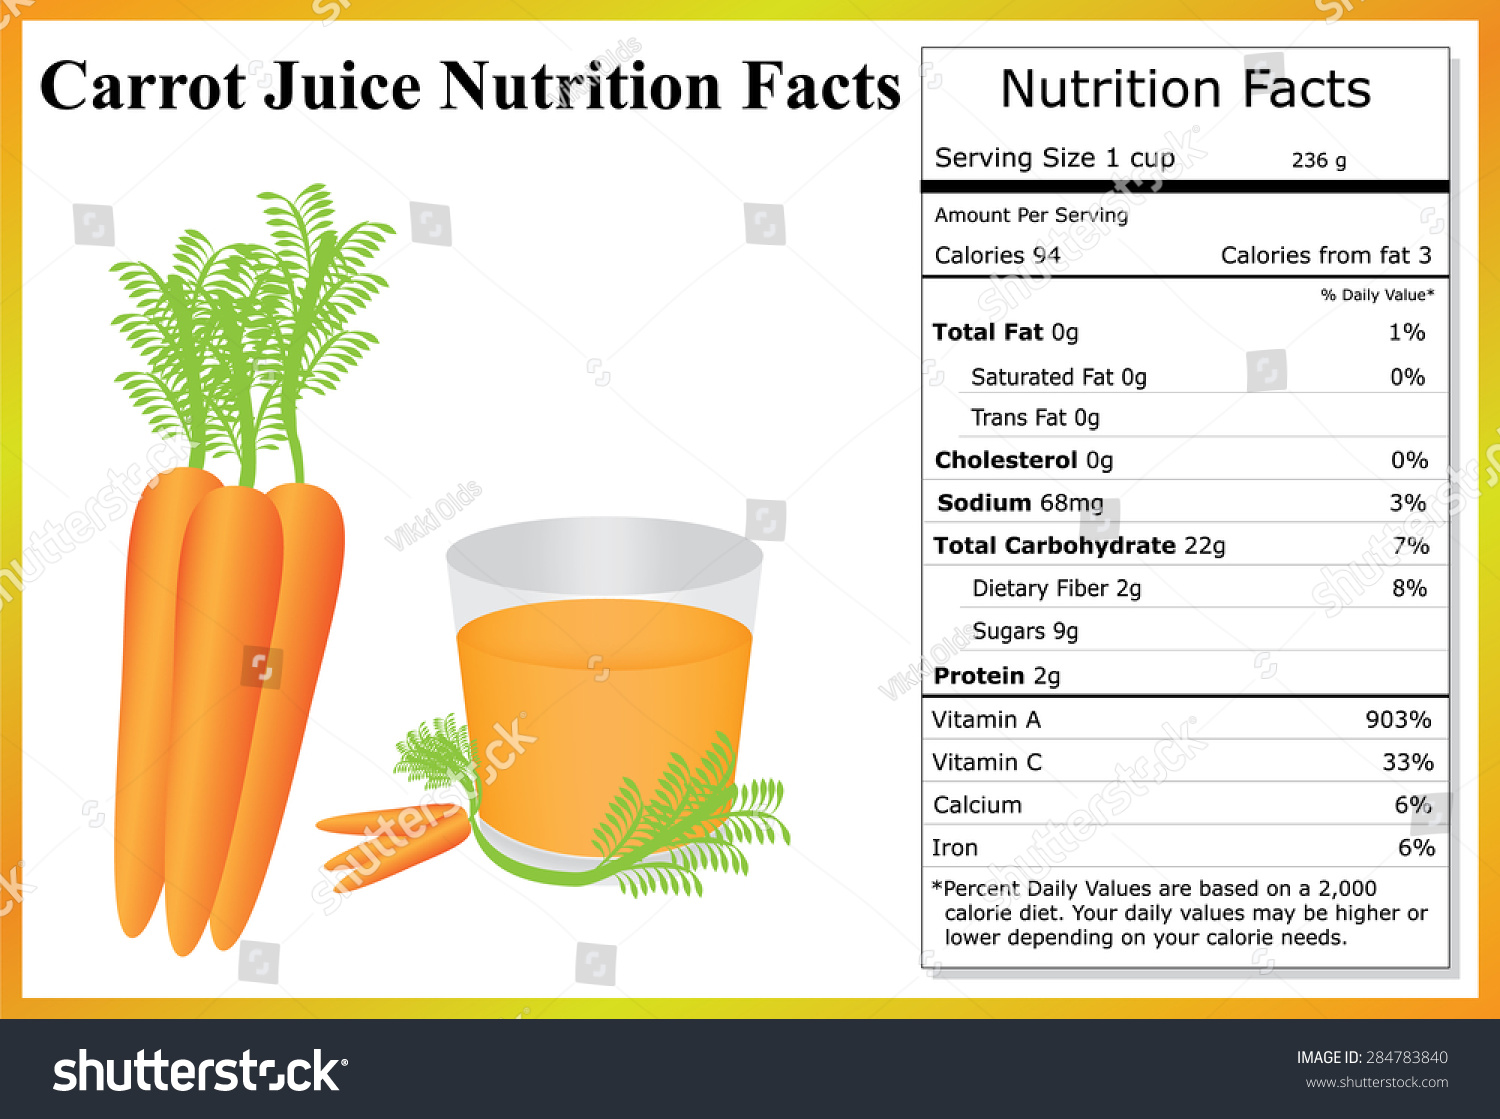 carrot juice nutrition facts carrots carrot stock vector (royalty